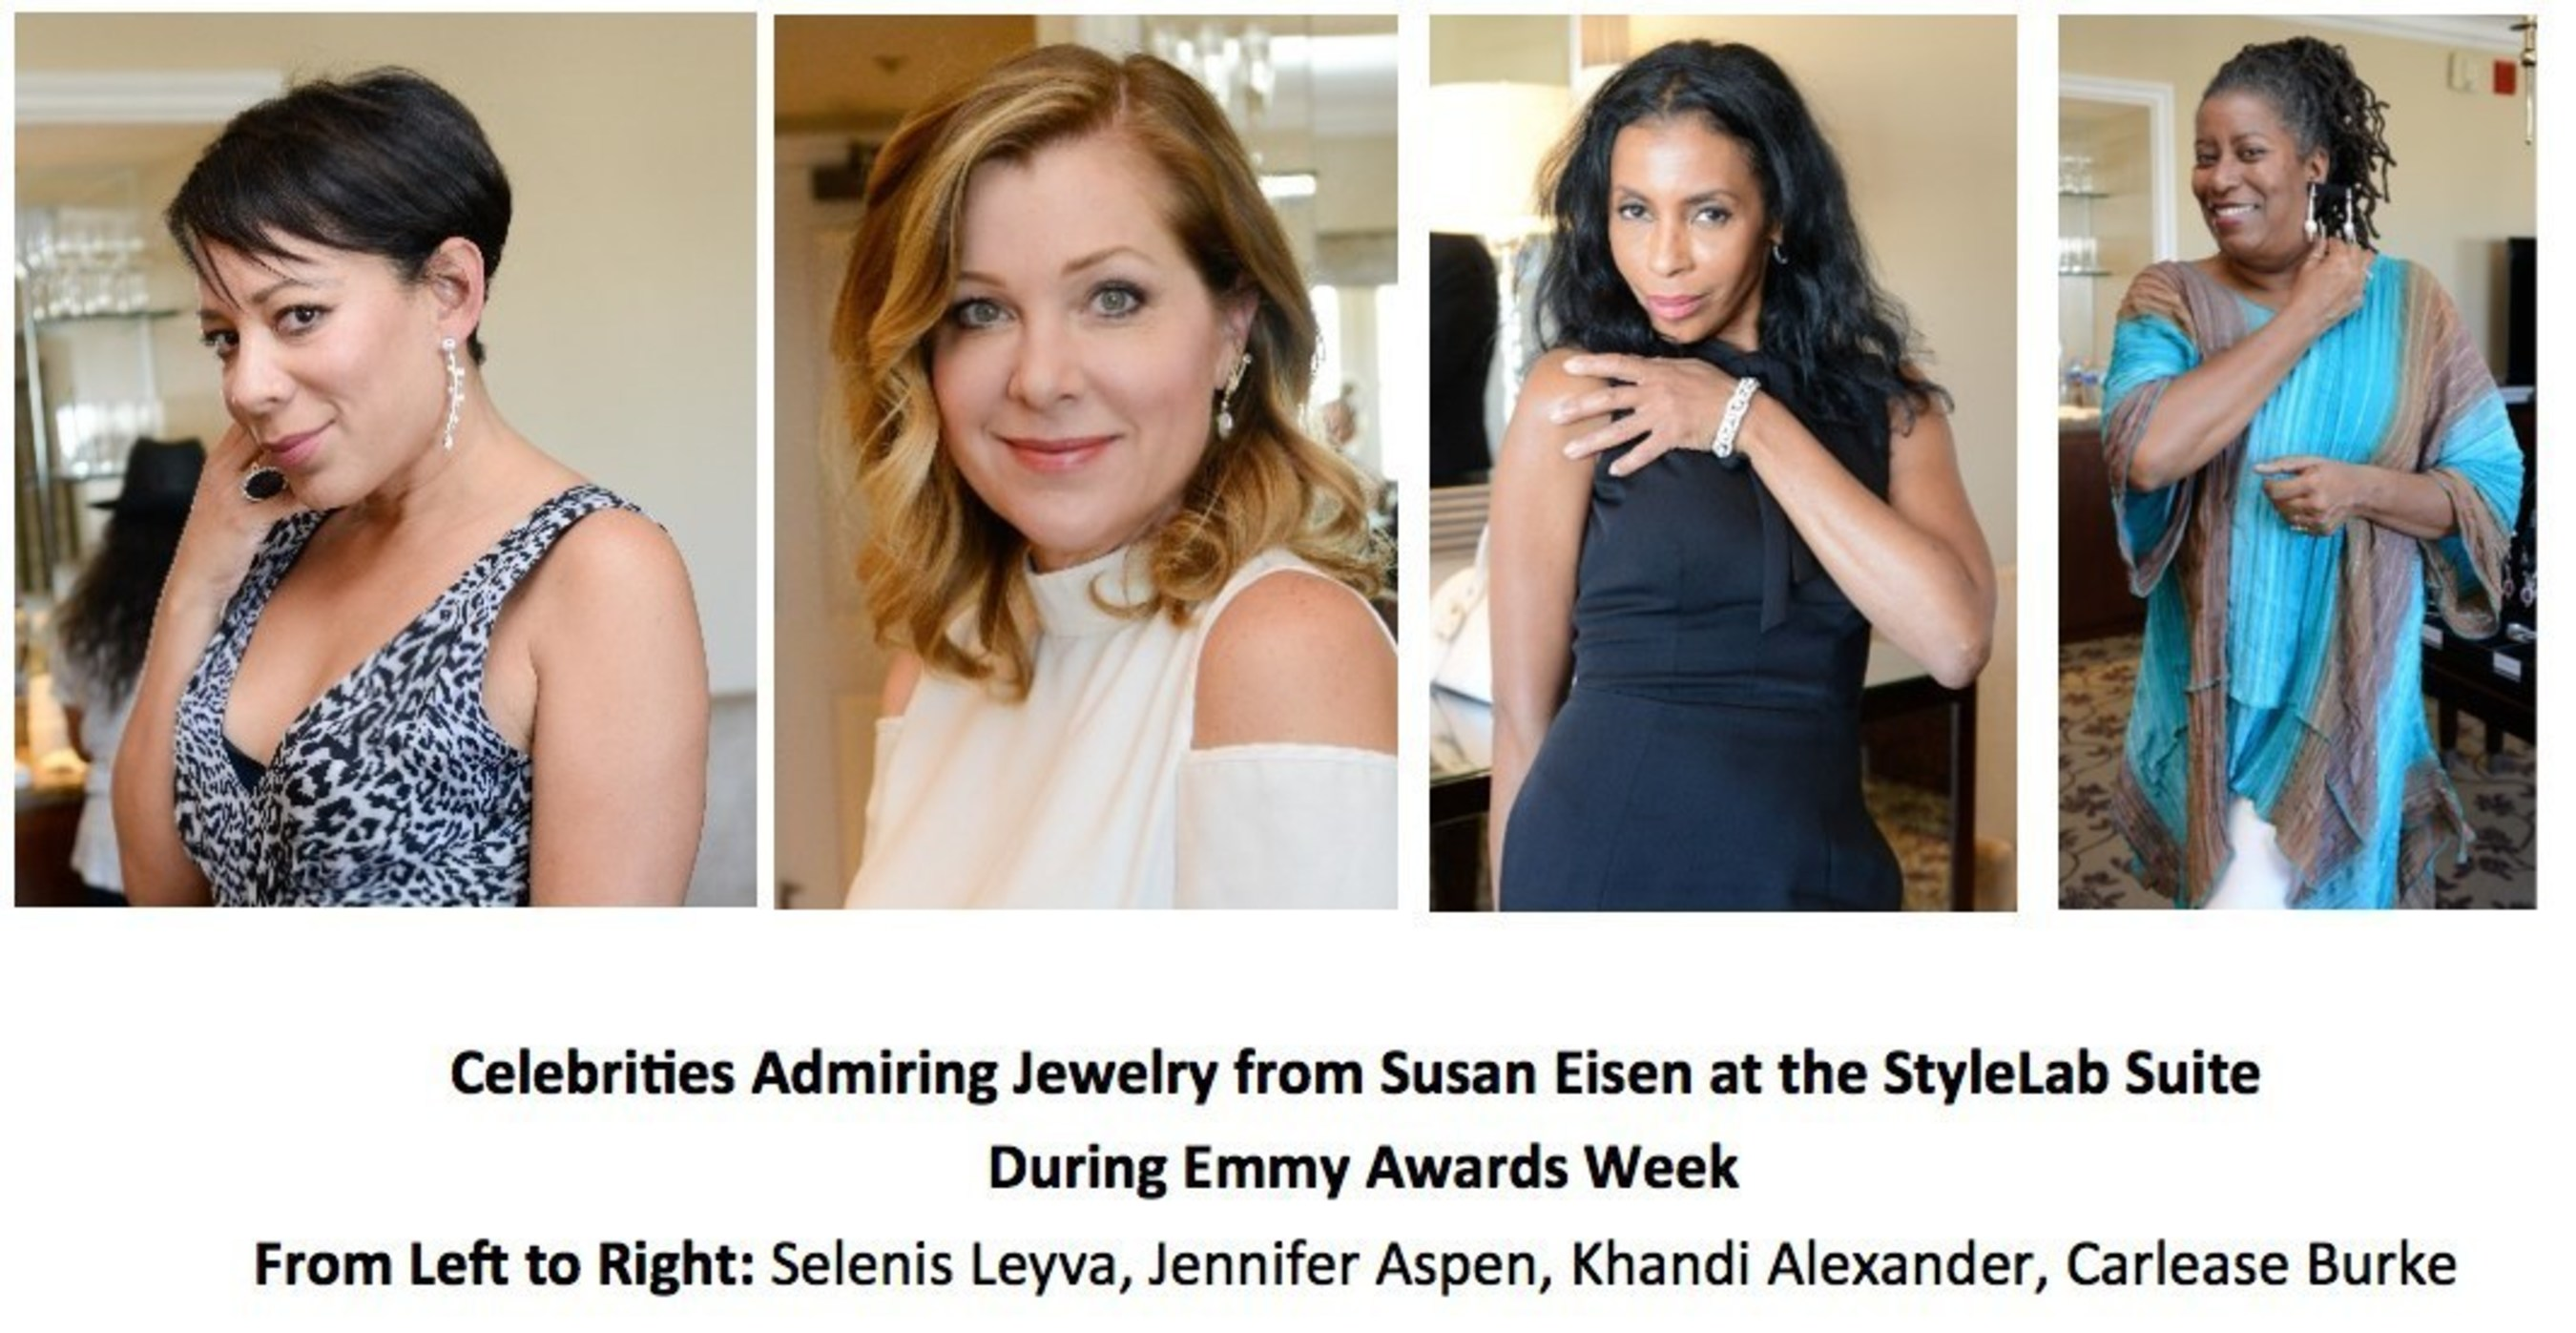 Celebrities And Their Stylists Previewed Jewelry From Susan Eisen At StyleLab's Suite During Emmy Awards Week